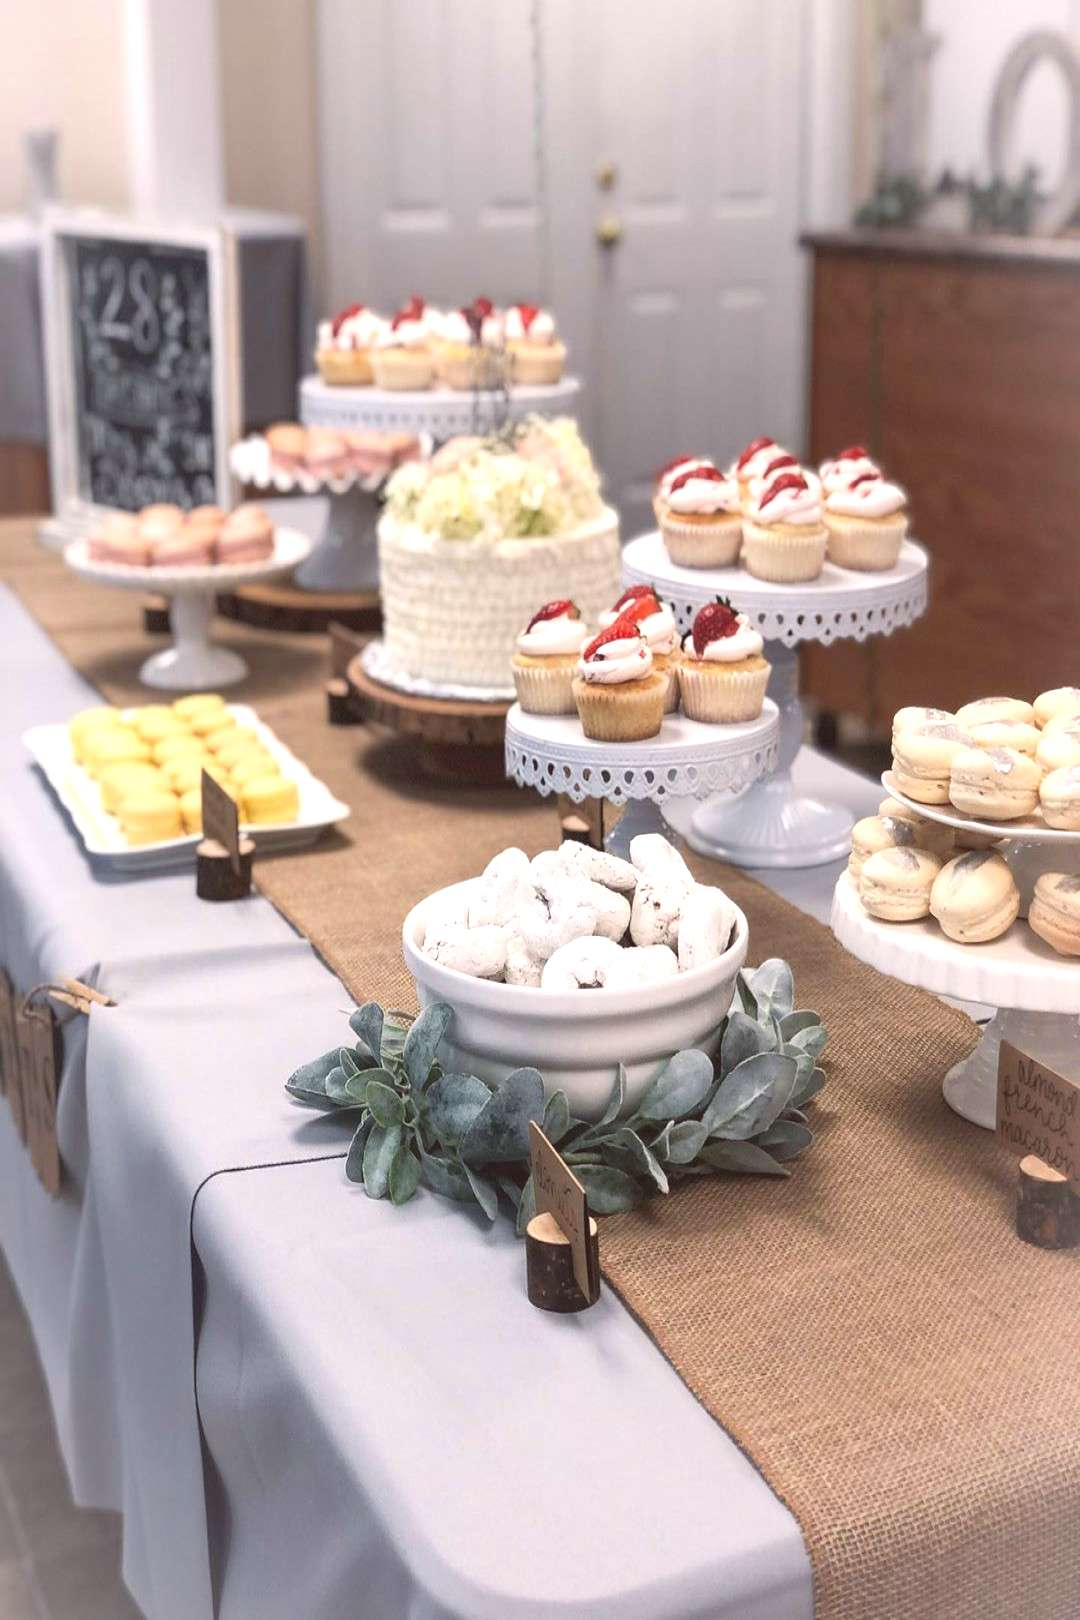 Sweets table for my future sister-in-laws bridal shower! #sweets